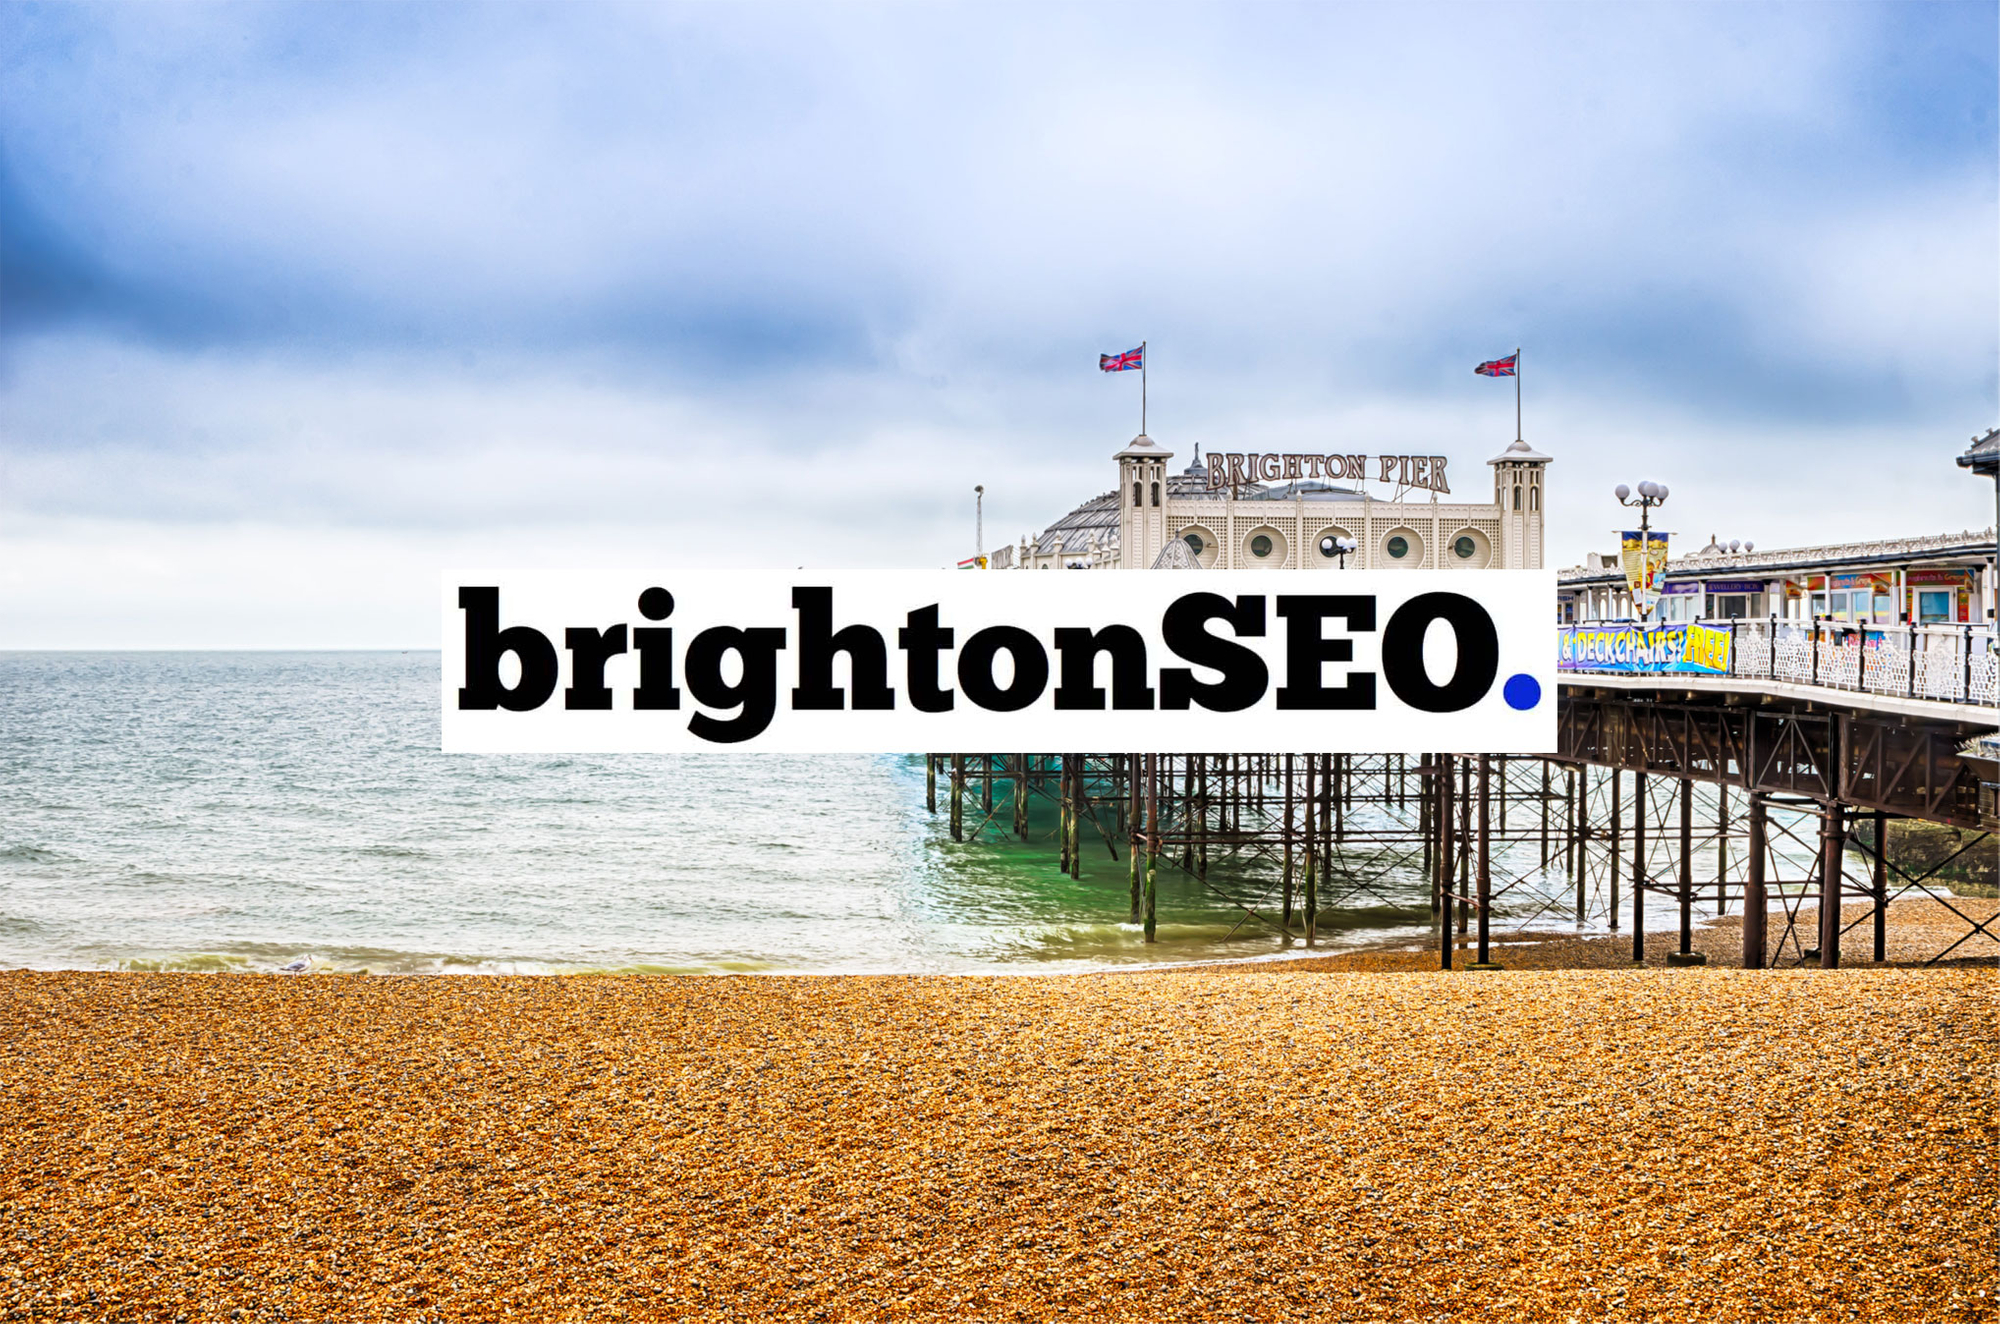 Bobbi Brant at BrightonSEO: How to Use Live Video in Content Marketing